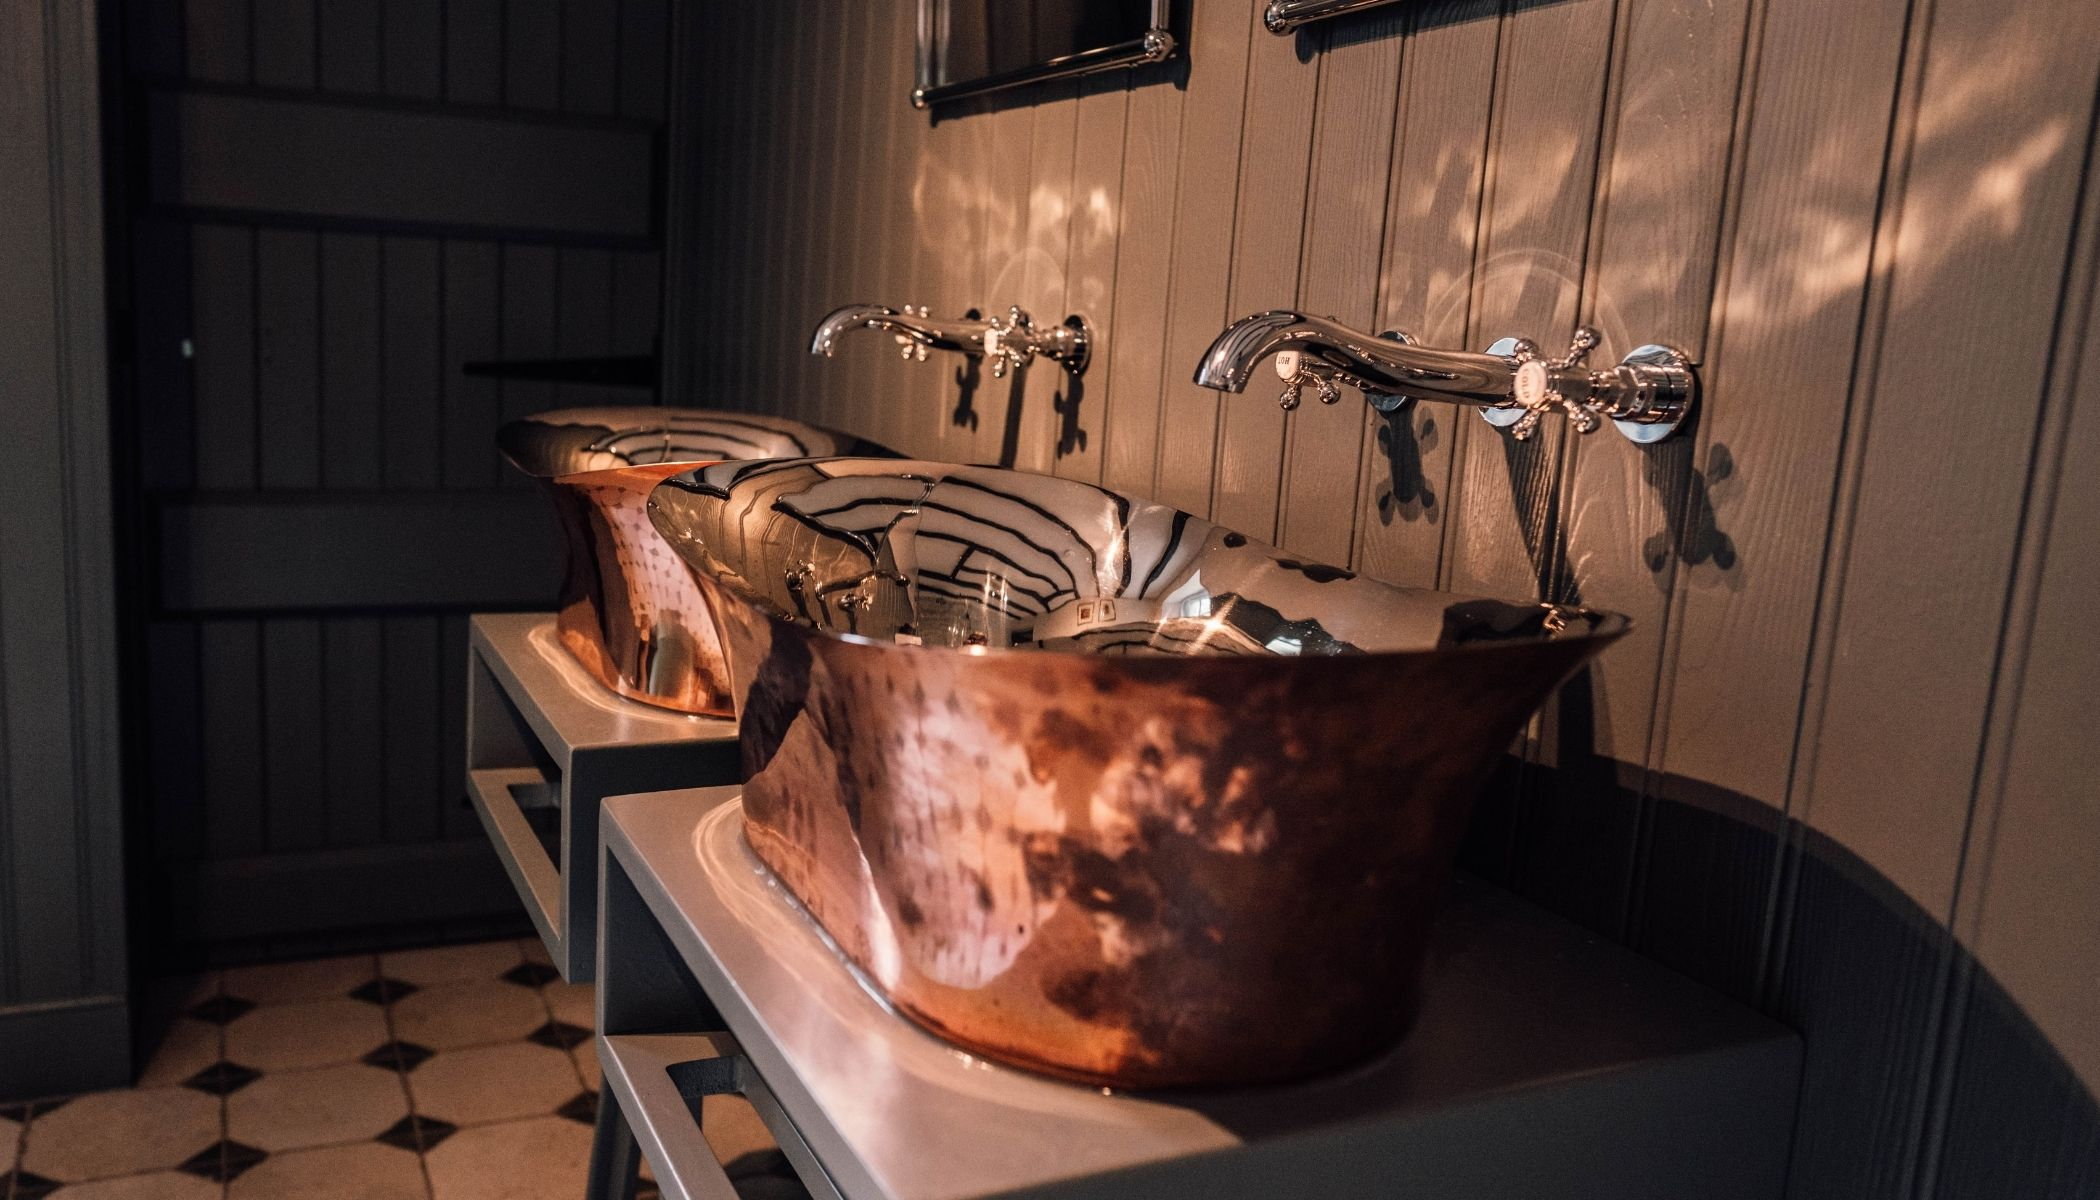 His and Her Copper Sinks